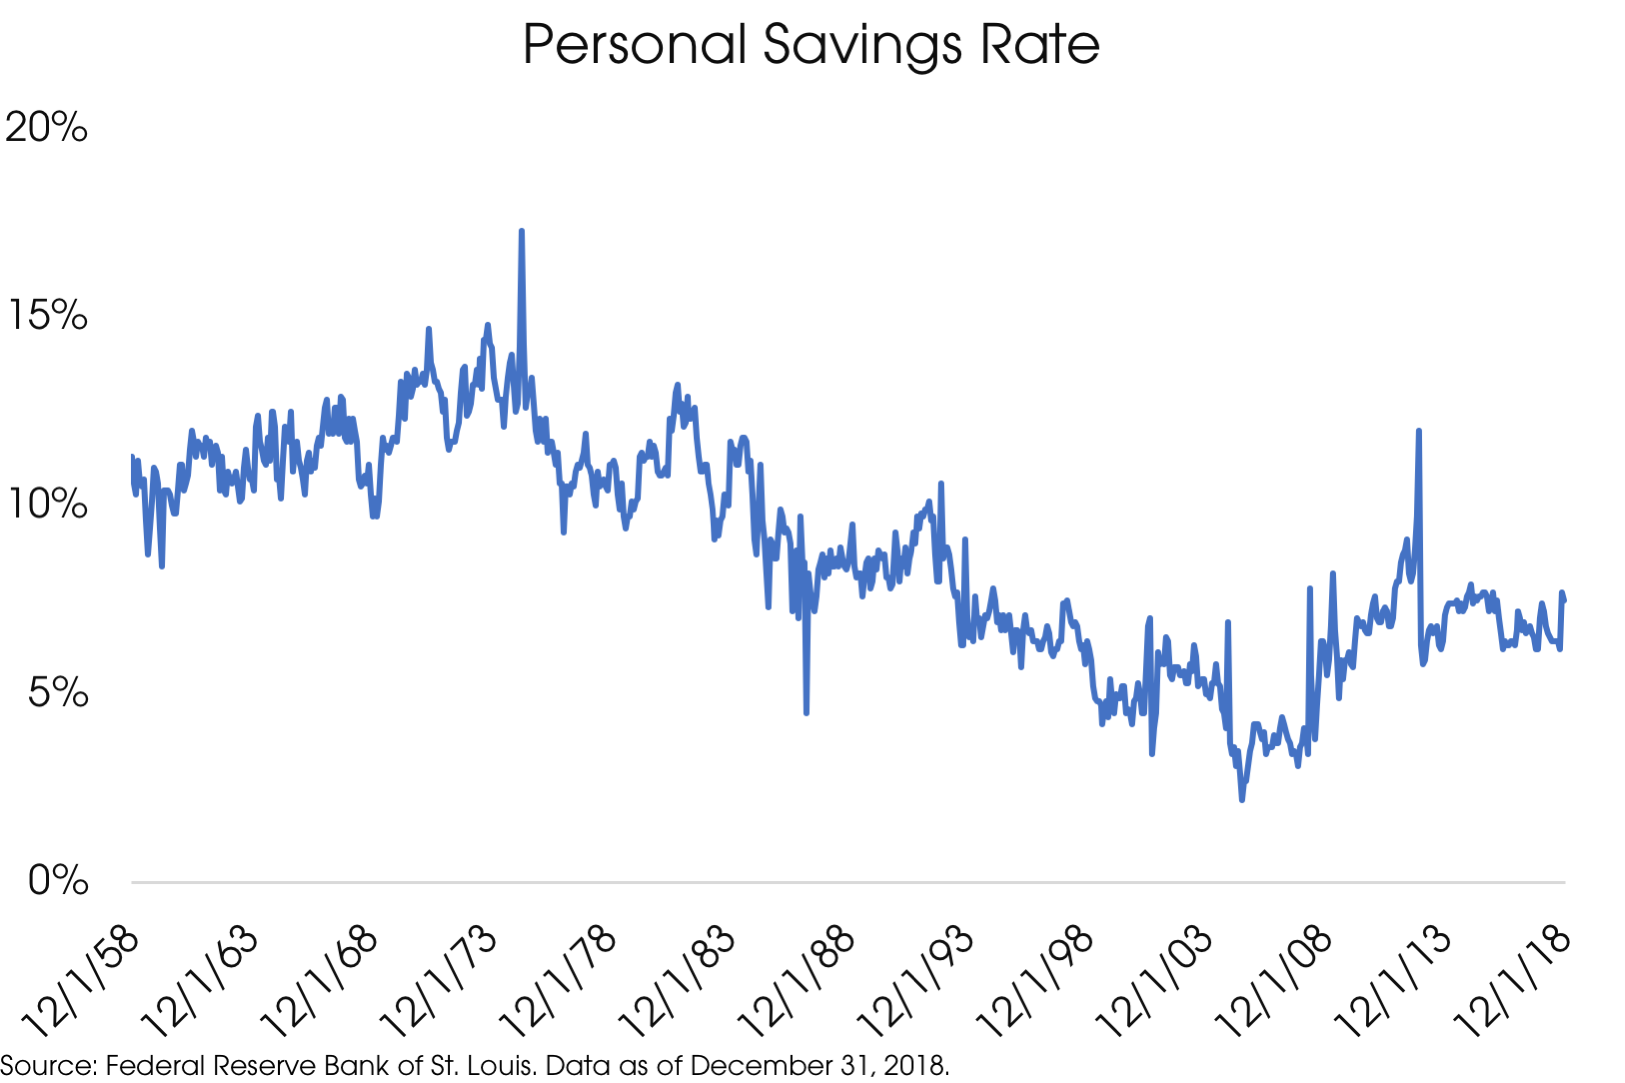 04152019_Personal Savings Rate.png